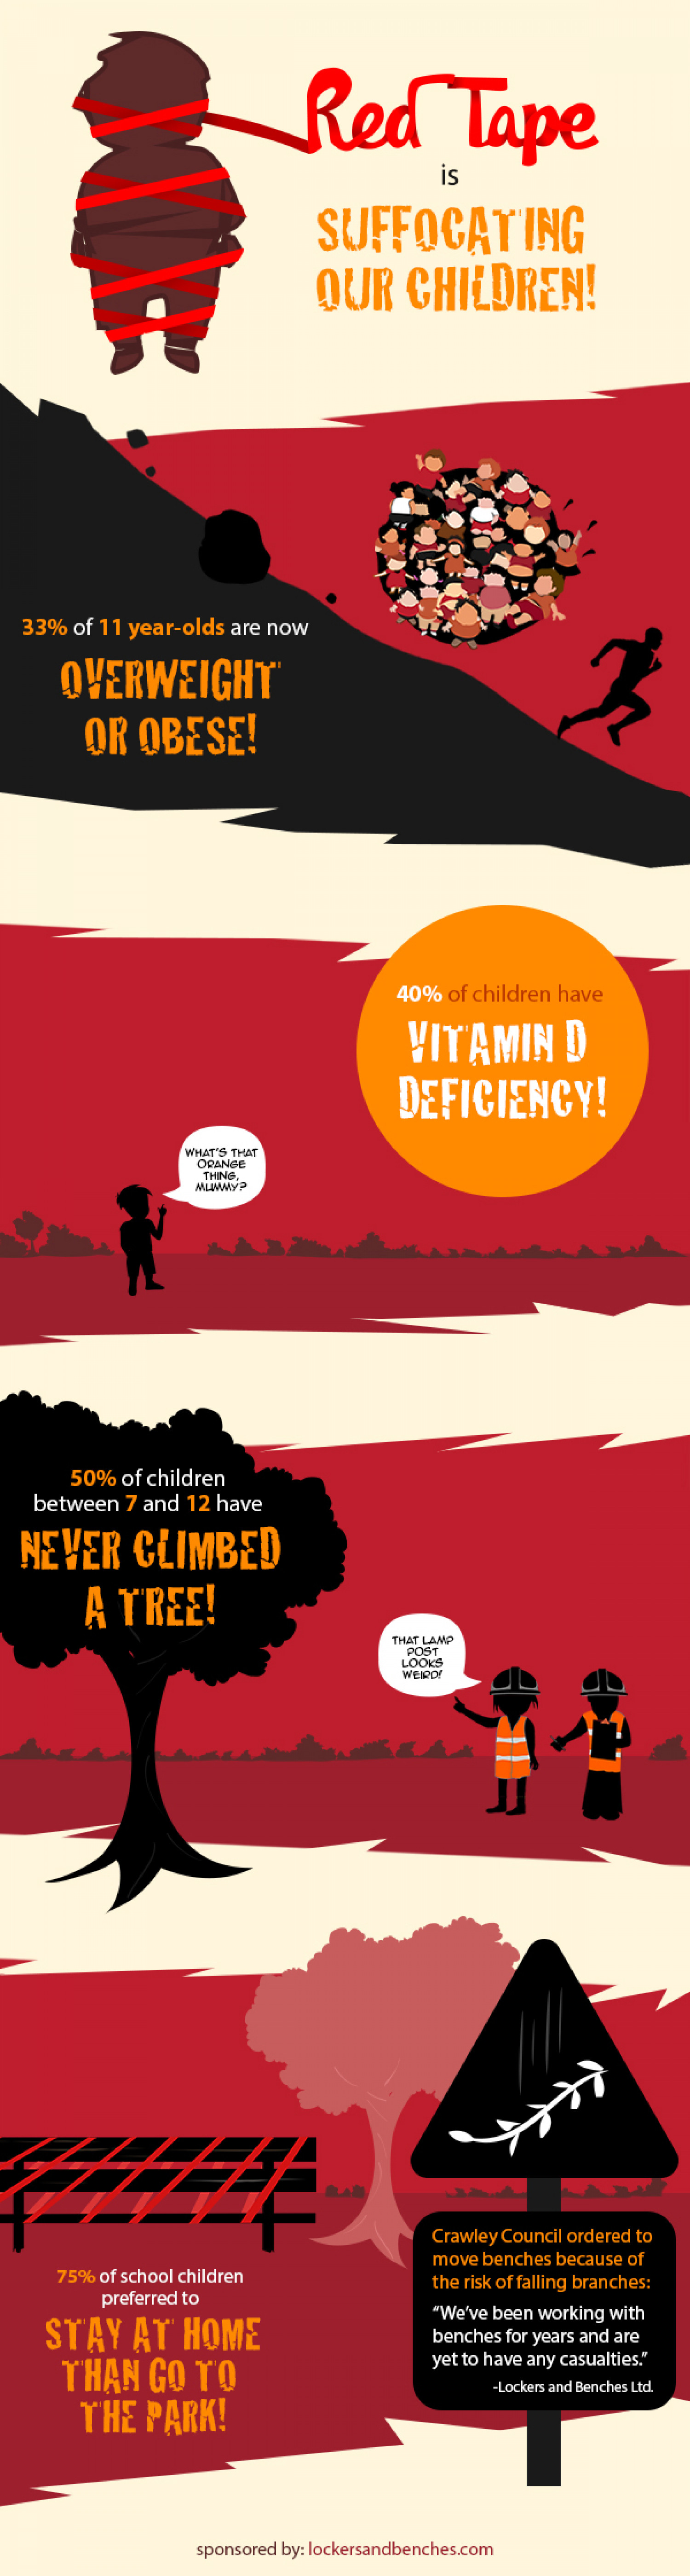 Red Tape is Suffocating Our Children Infographic